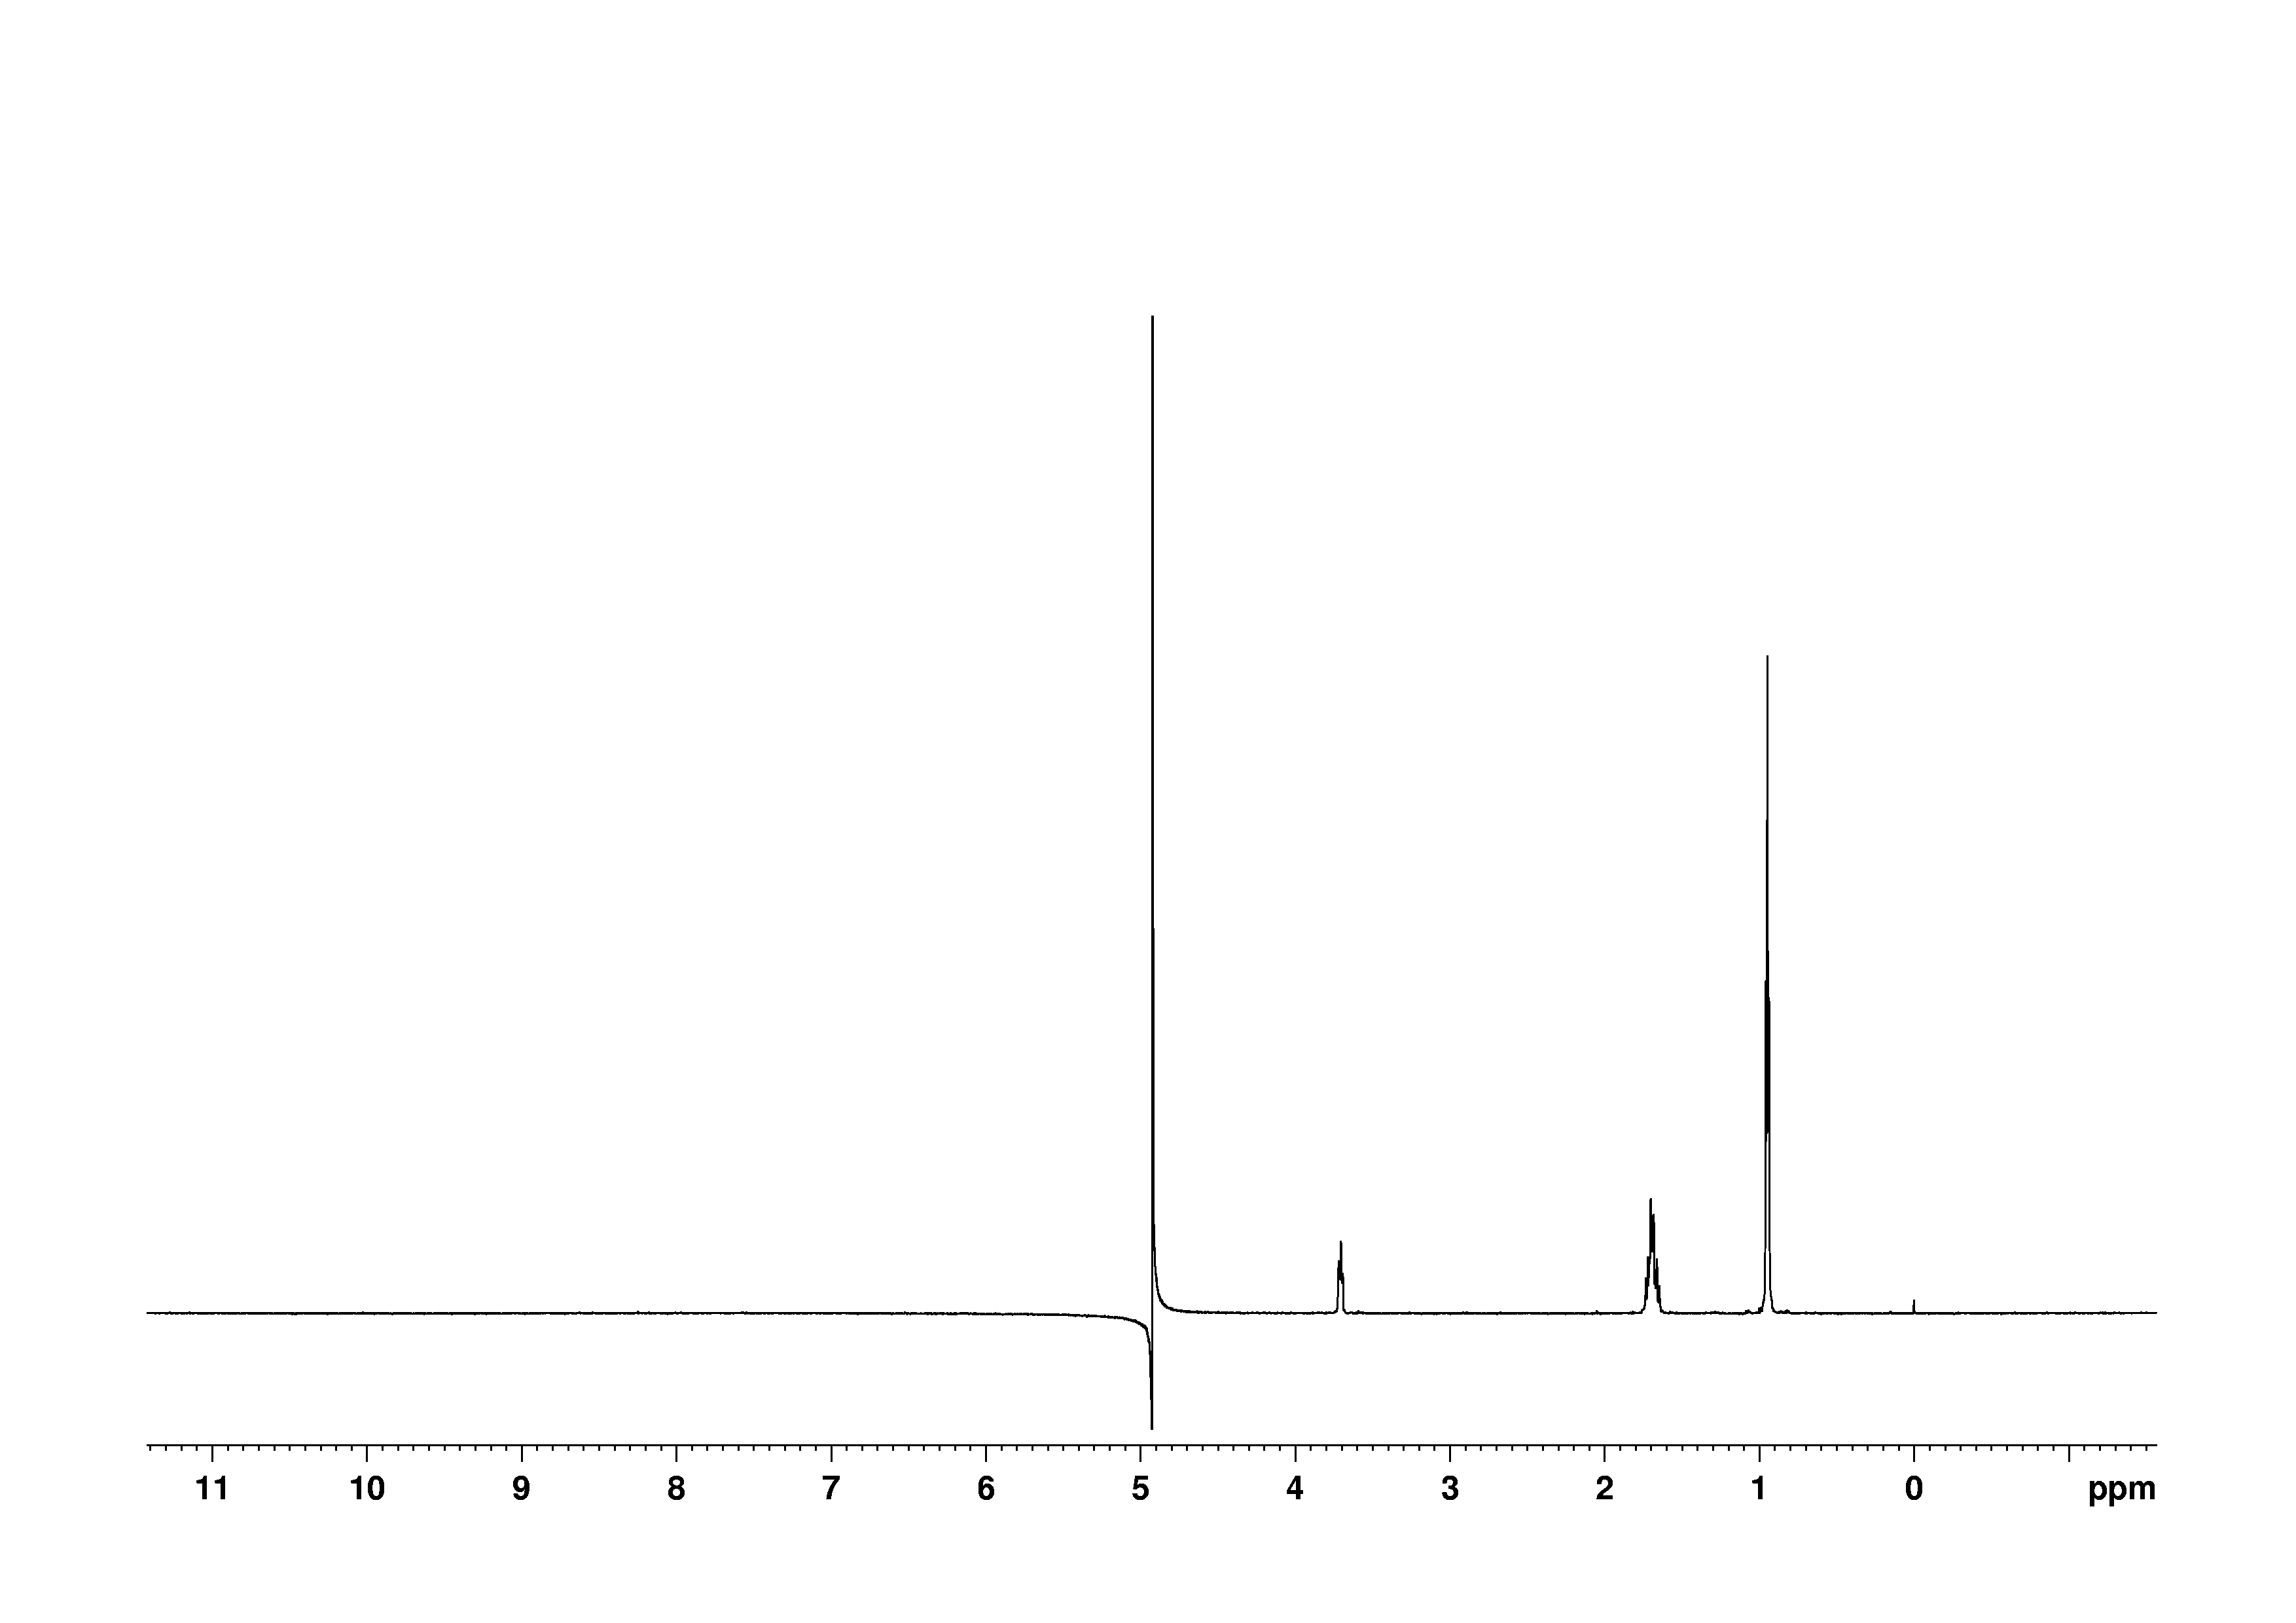 1D 1H, 2.0 mM, 7.4 spectrum for L-Leucine